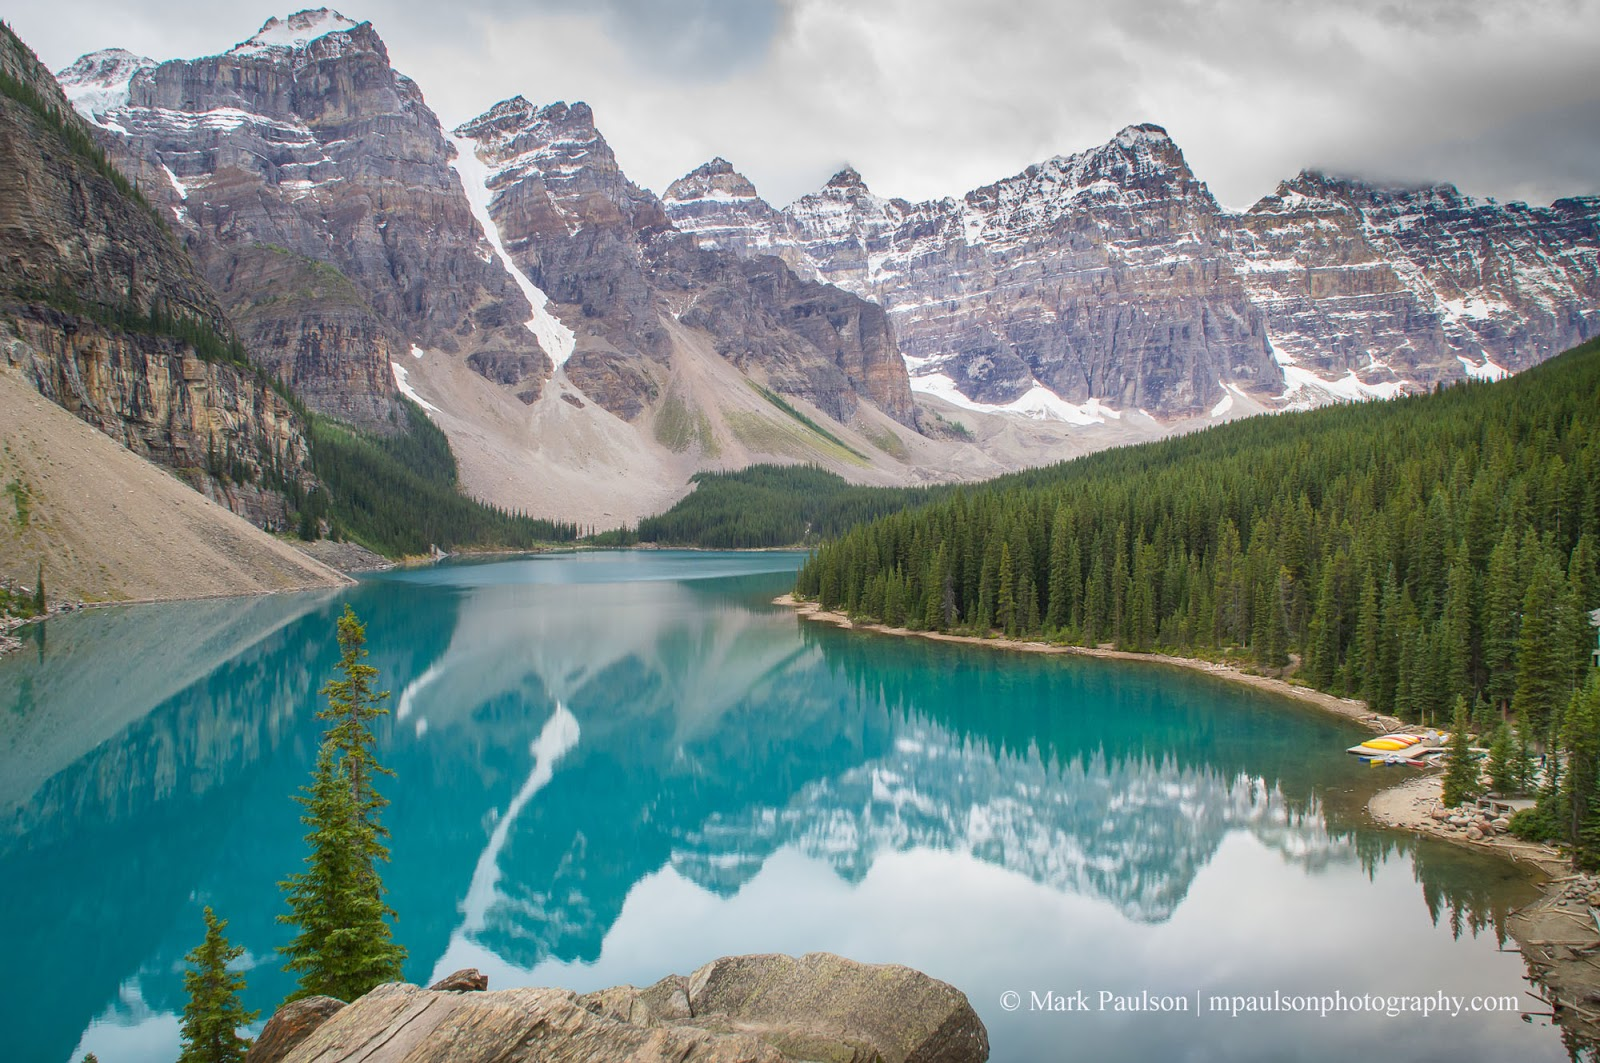 Map Artistic Photography Photo Of The Day Morraine Lake Banff Canada